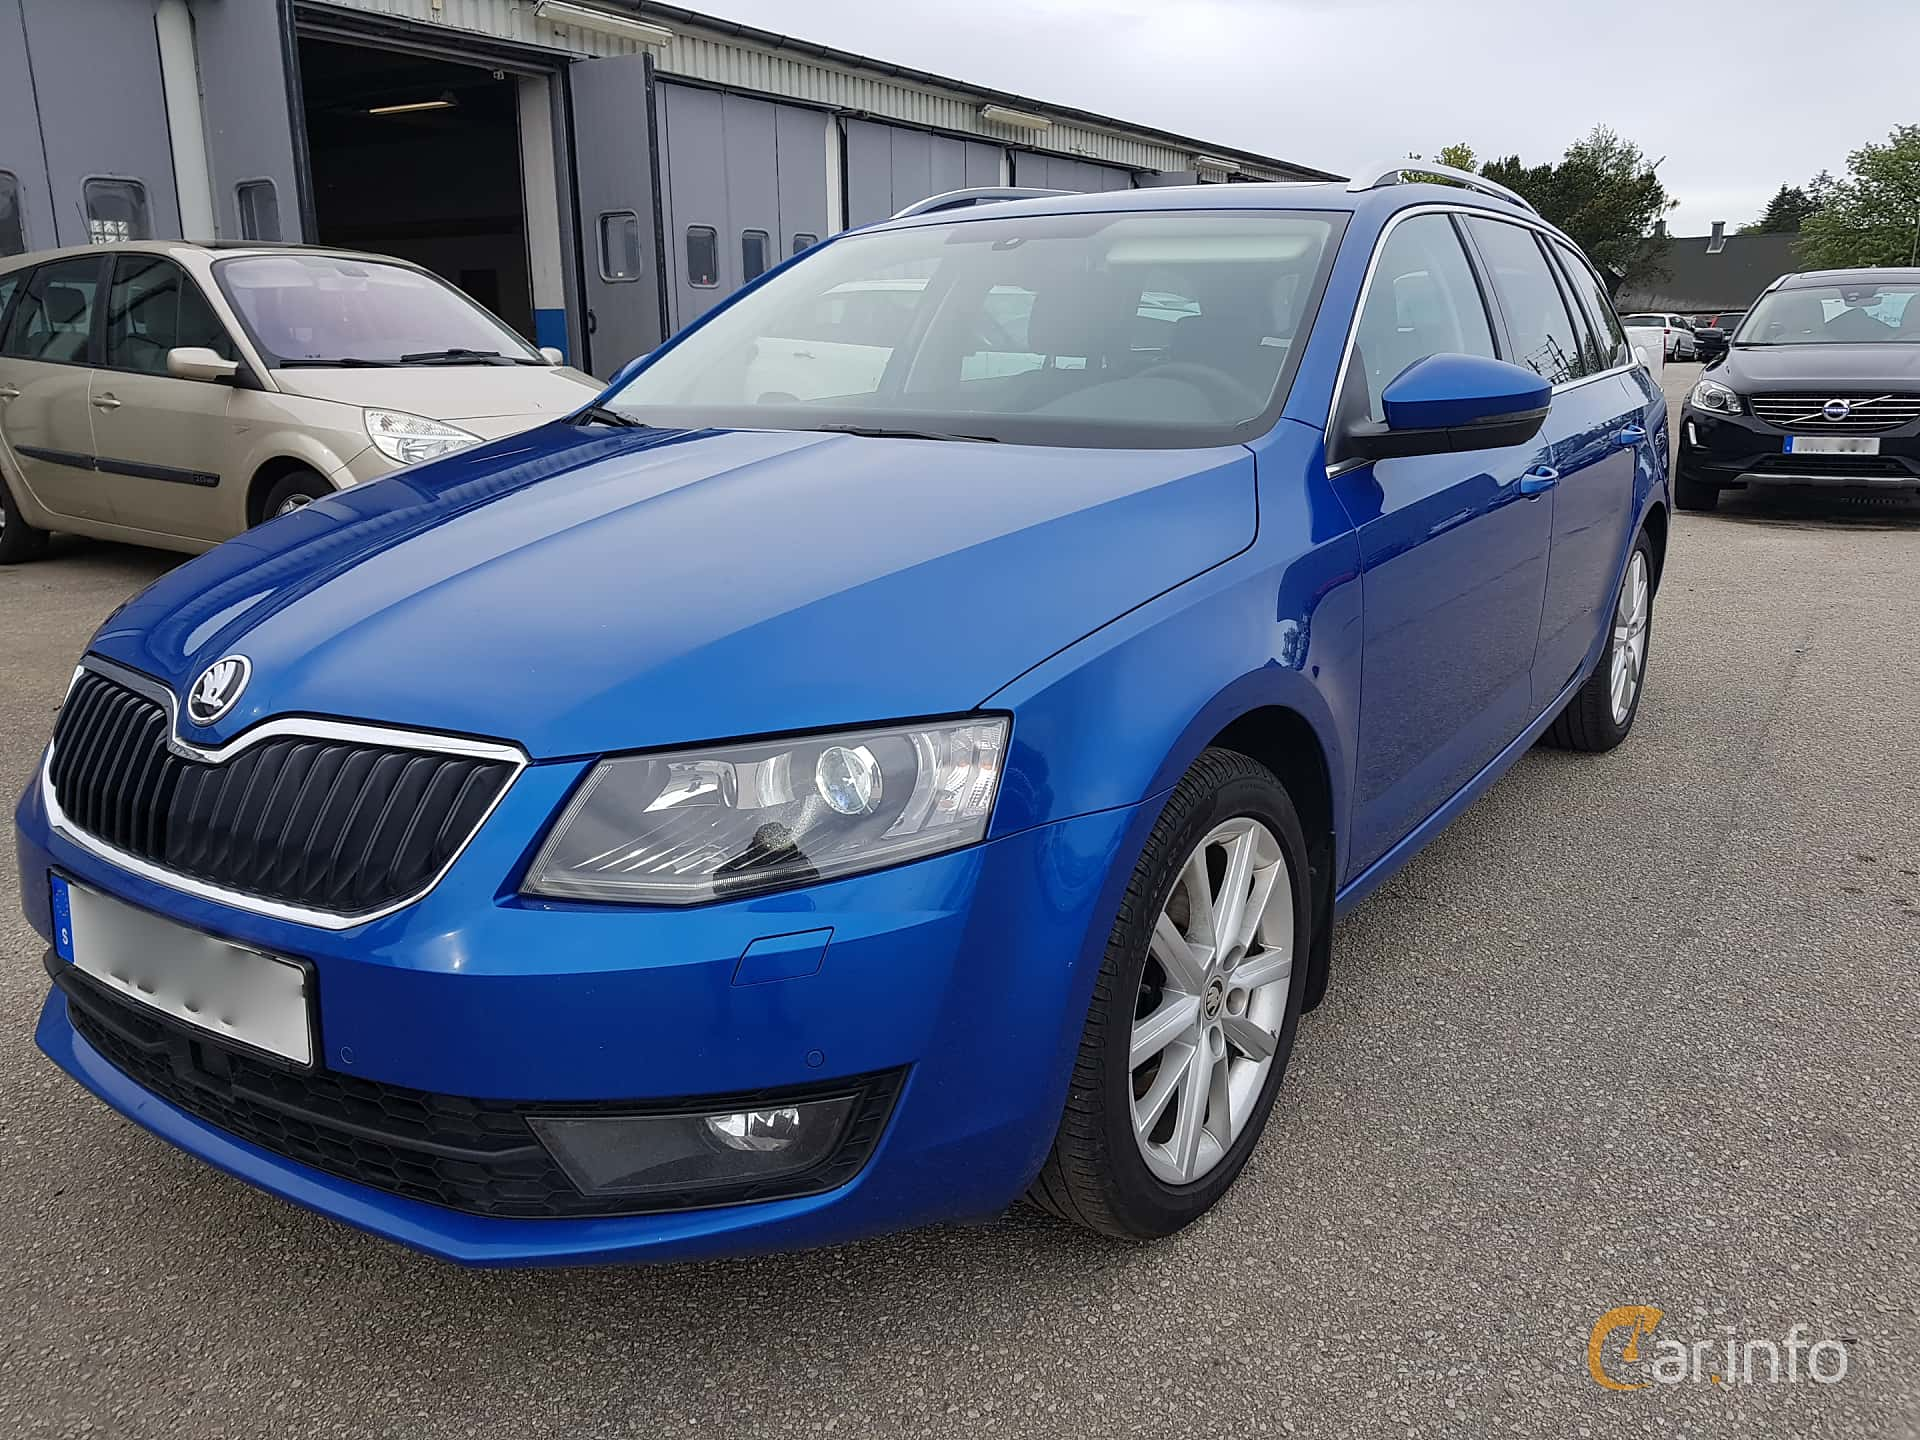 Skoda Octavia Combi 2.0 TDI 4x4 Manual, 150hp, 2016